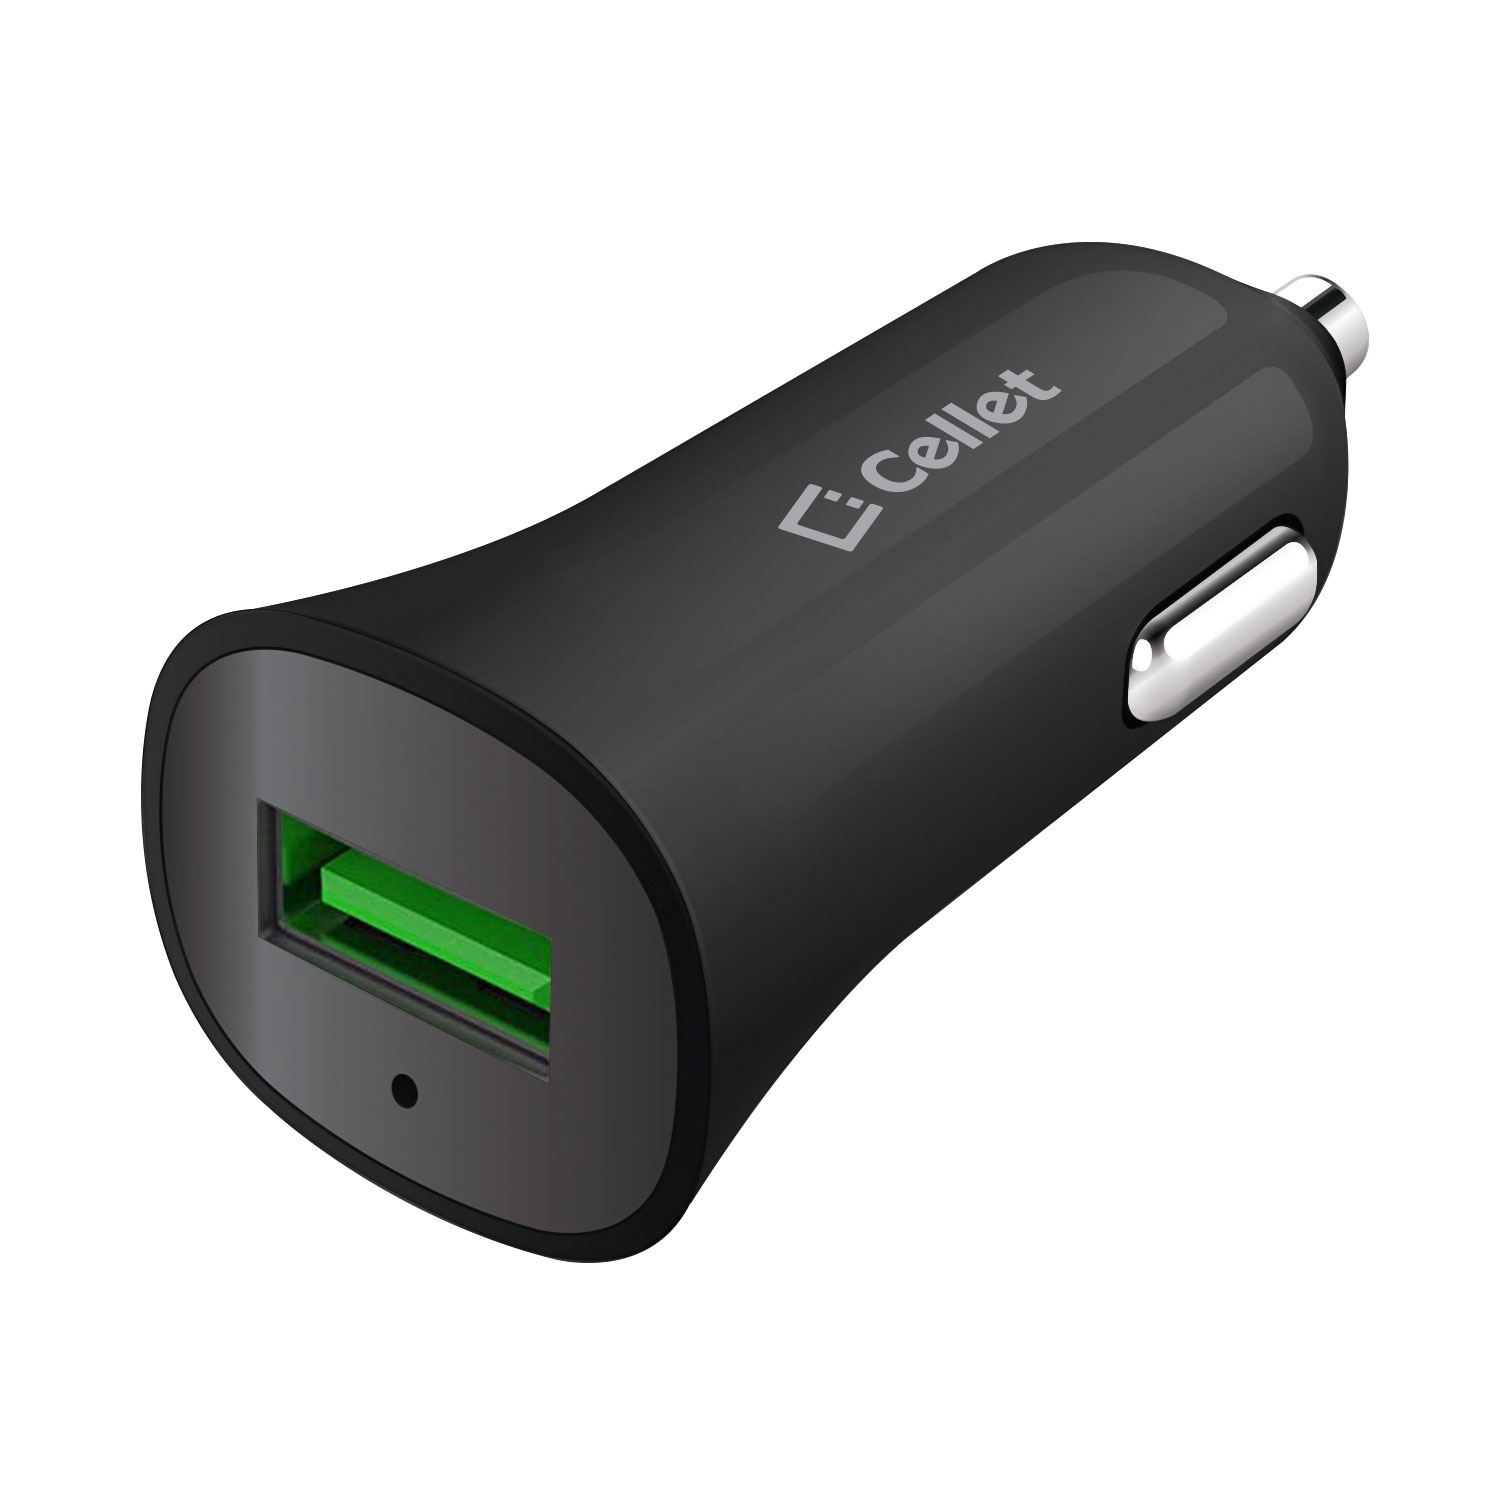 Moto Droid Mini Car Charger Quick Charge 3.0 Black 3.3ft